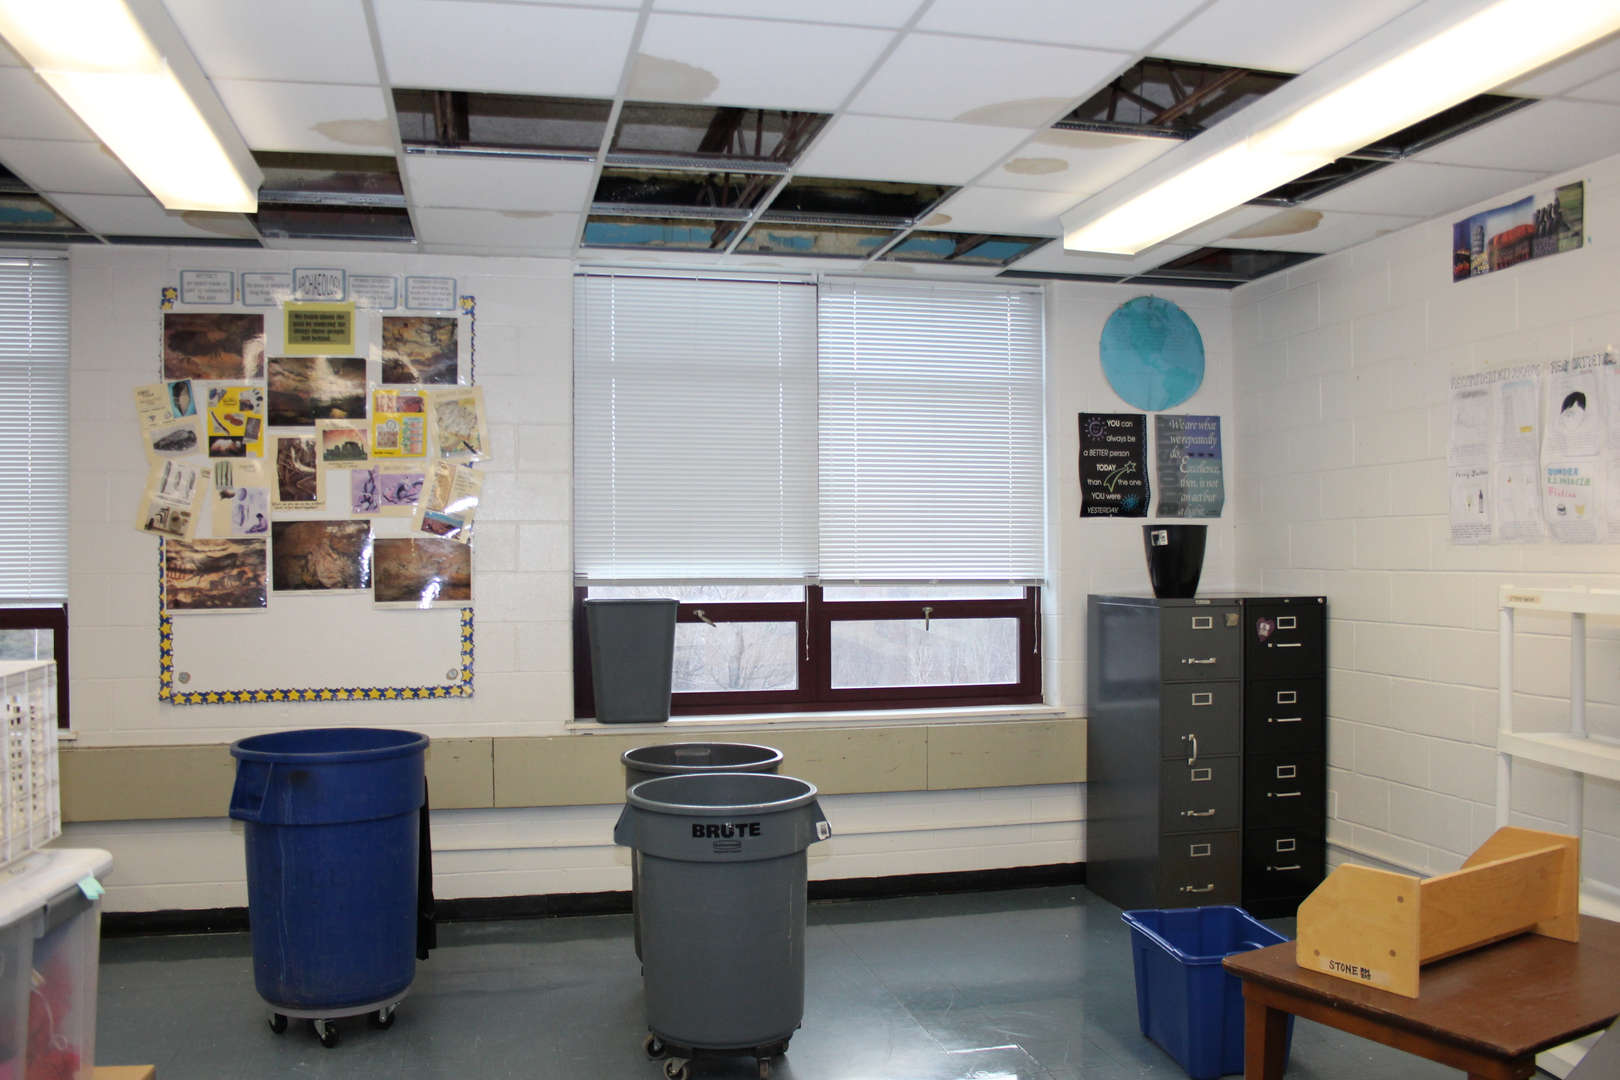 Despite regular maintenance, our roofs are near the end of their useful life. This is especially evident during heavy rains. This is a classroom in GFMS after a recent storm.